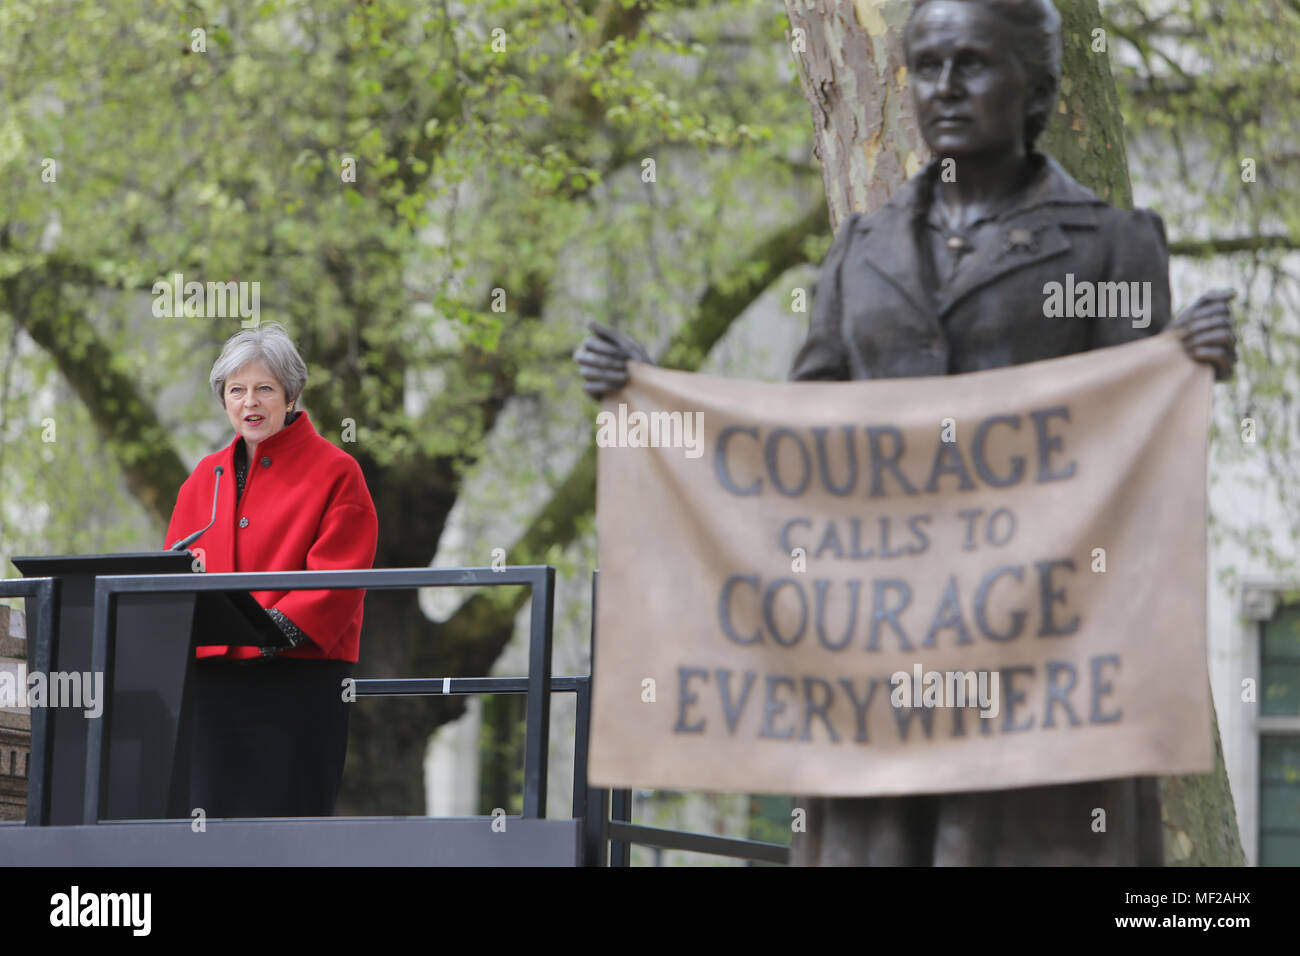 London, UK. London 24 April 2018 With the prime minister,members of the cabinet and ministers the Mayor of London  Caroline Criado-Perez, among very tight security ,westminster bridge and whitehall were close to to trafficThe historic unveiling of one of the most significant statues of our time took place in Parliament square the suffragist who battled to get the women right to vote Millicent Fawcett  is the first ever statue of a woman in Parliament Square, and the first ever statue there to be created by a woman artist, Gillian Wearing OBE@Paul Quezada-Neiman/Alamy Live News - Stock Image